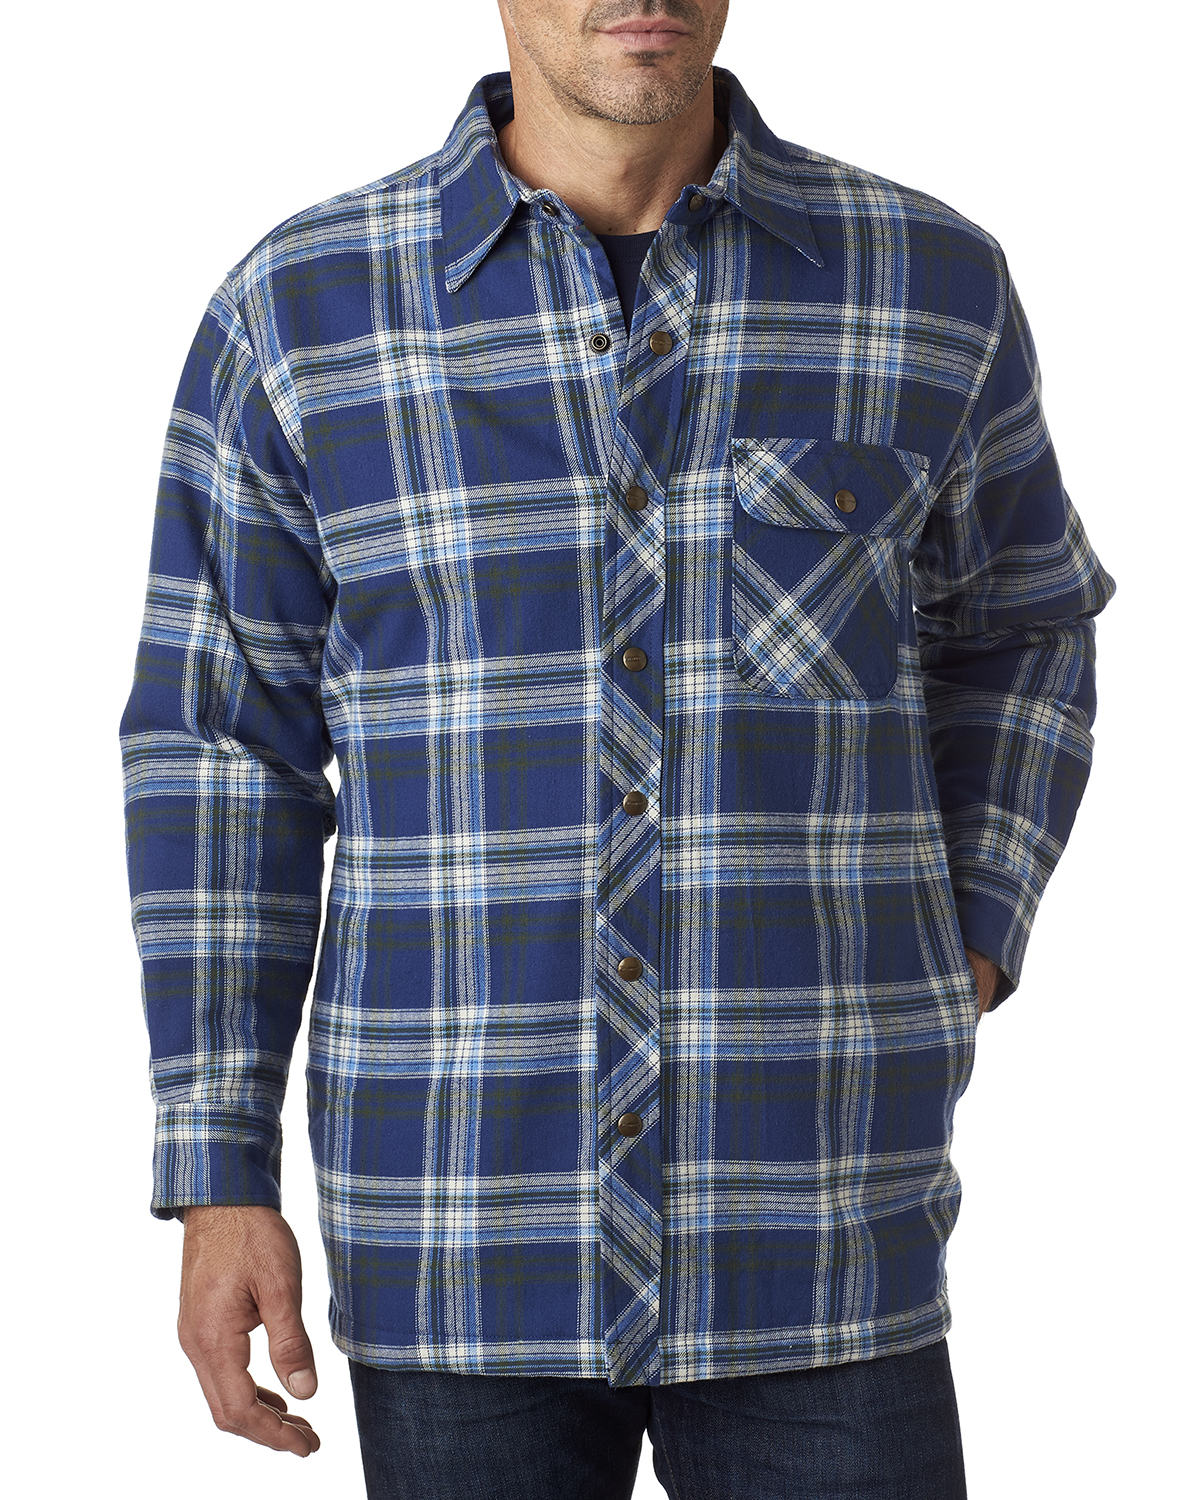 Backpacker bp7002 men 39 s flannel shirt jacket with quilt for Men flannel shirt jacket with quilted lining